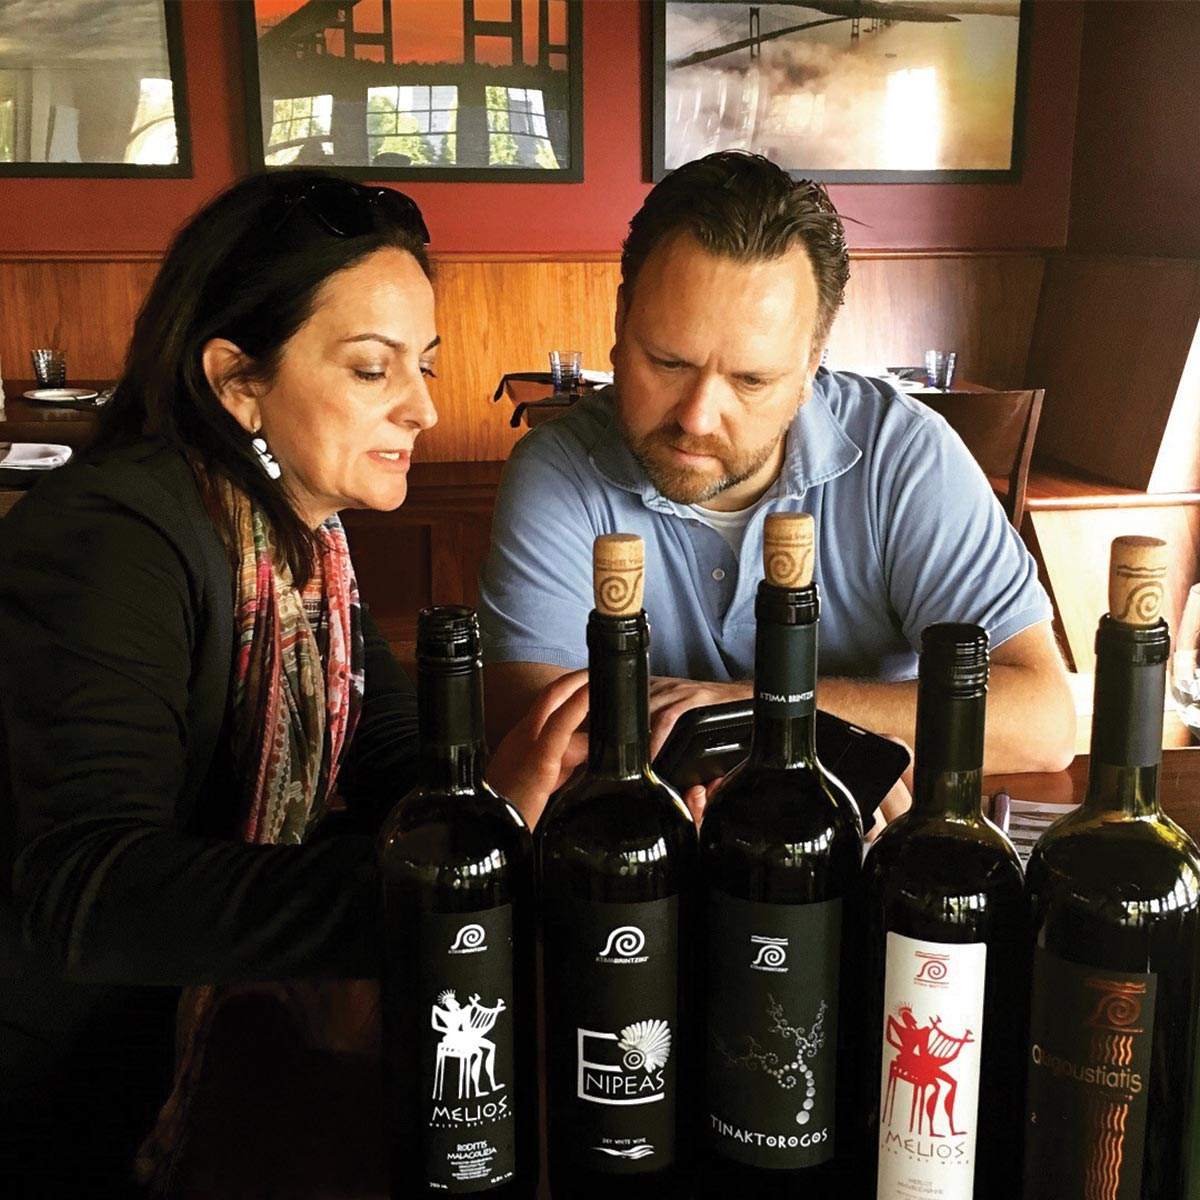 Sage Cellars Welcomes Ktima Brintziki Winemaker from Greece | The